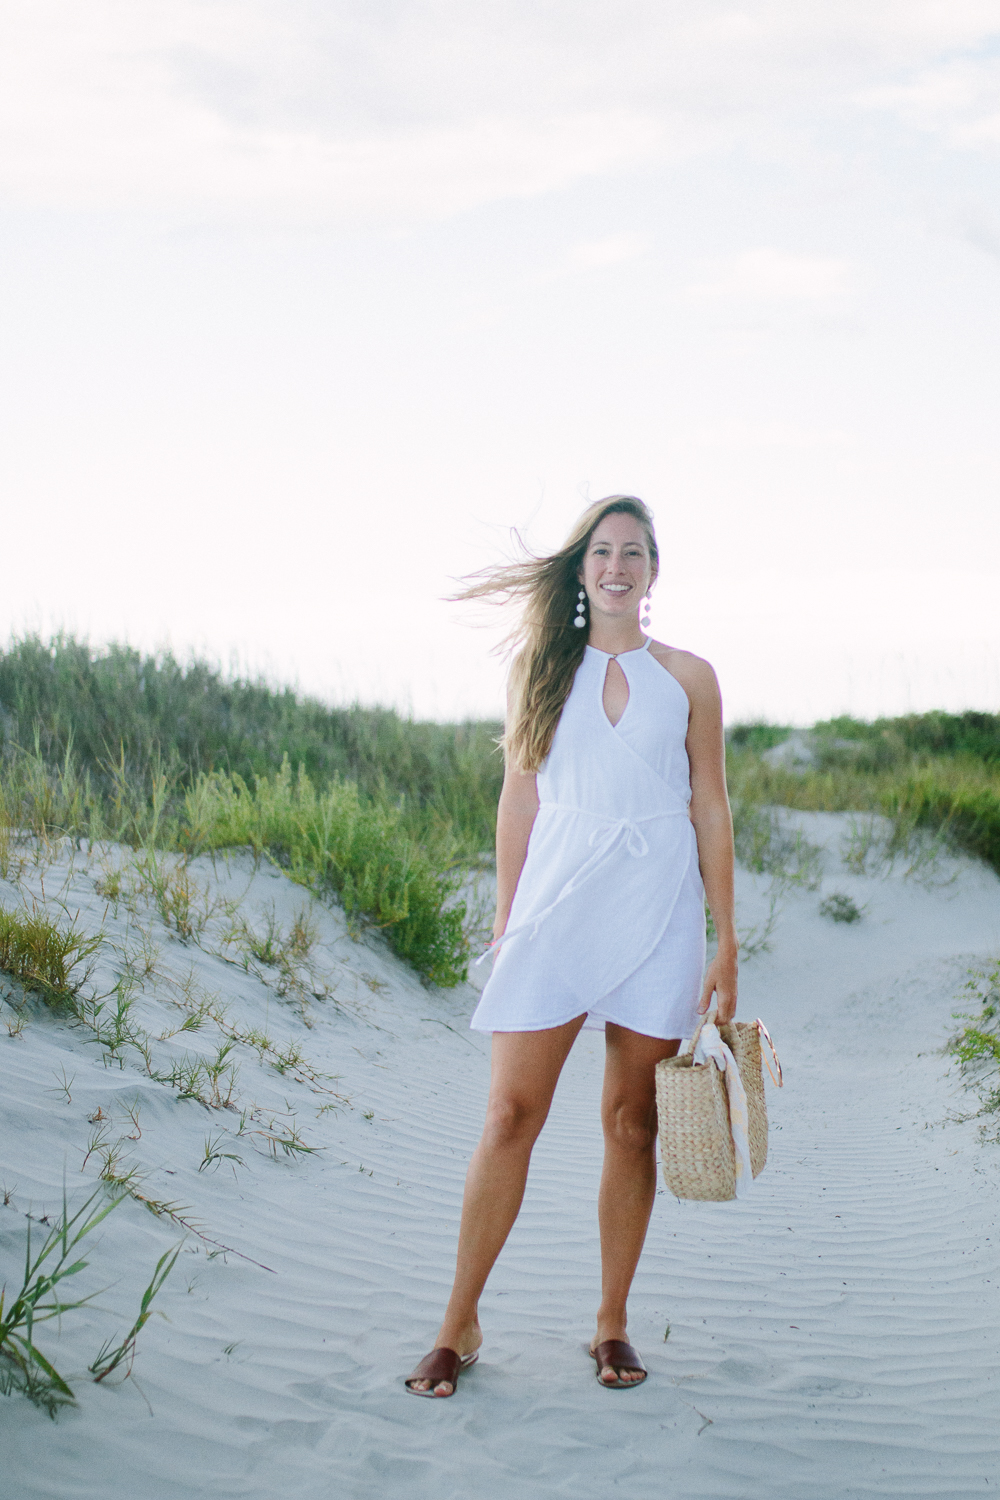 White Sundresses for Summer Beach Vacations | Sunshine Style